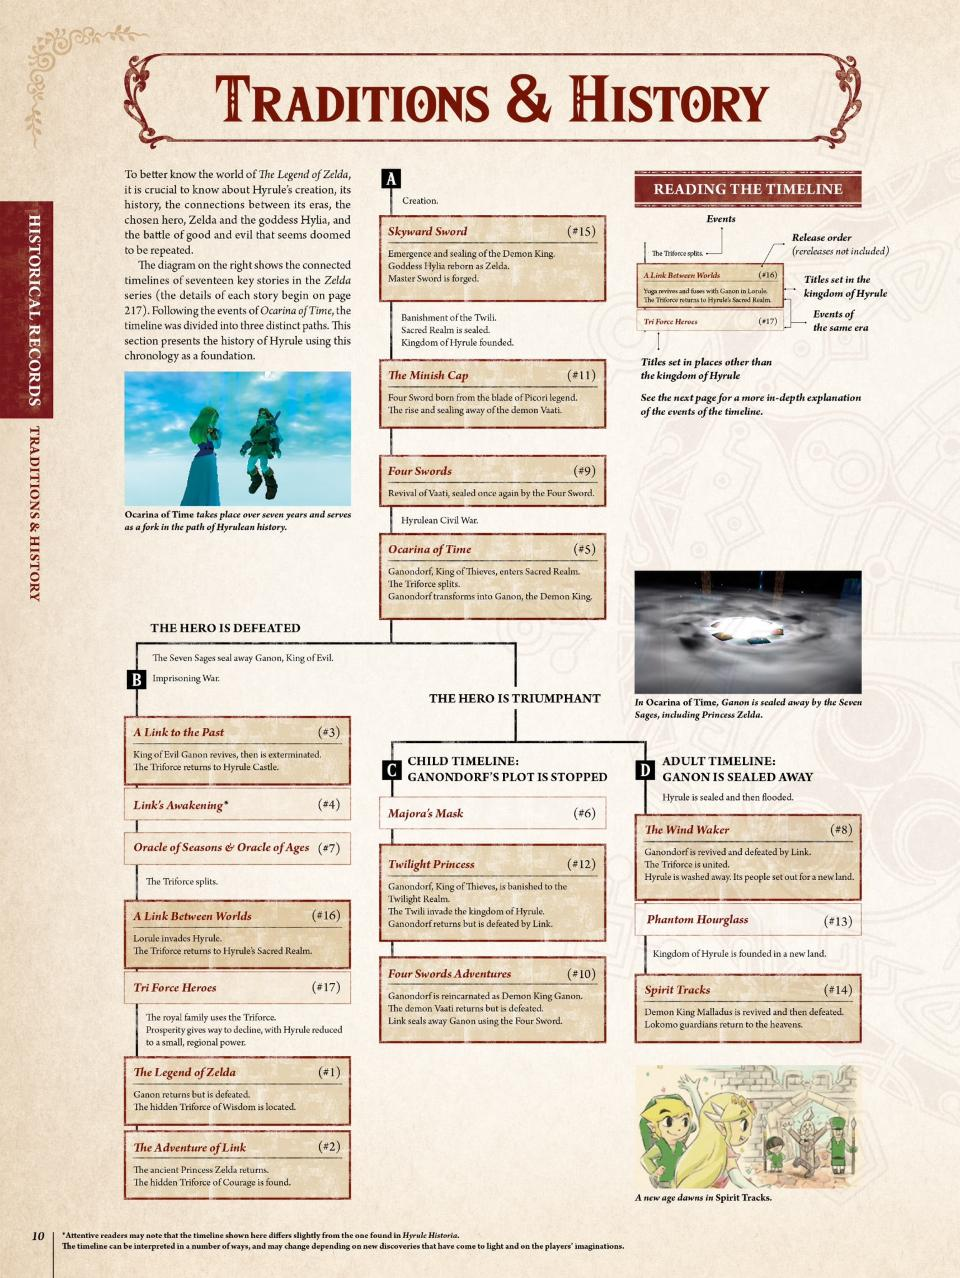 Hyrule Encyclopedia Timeline